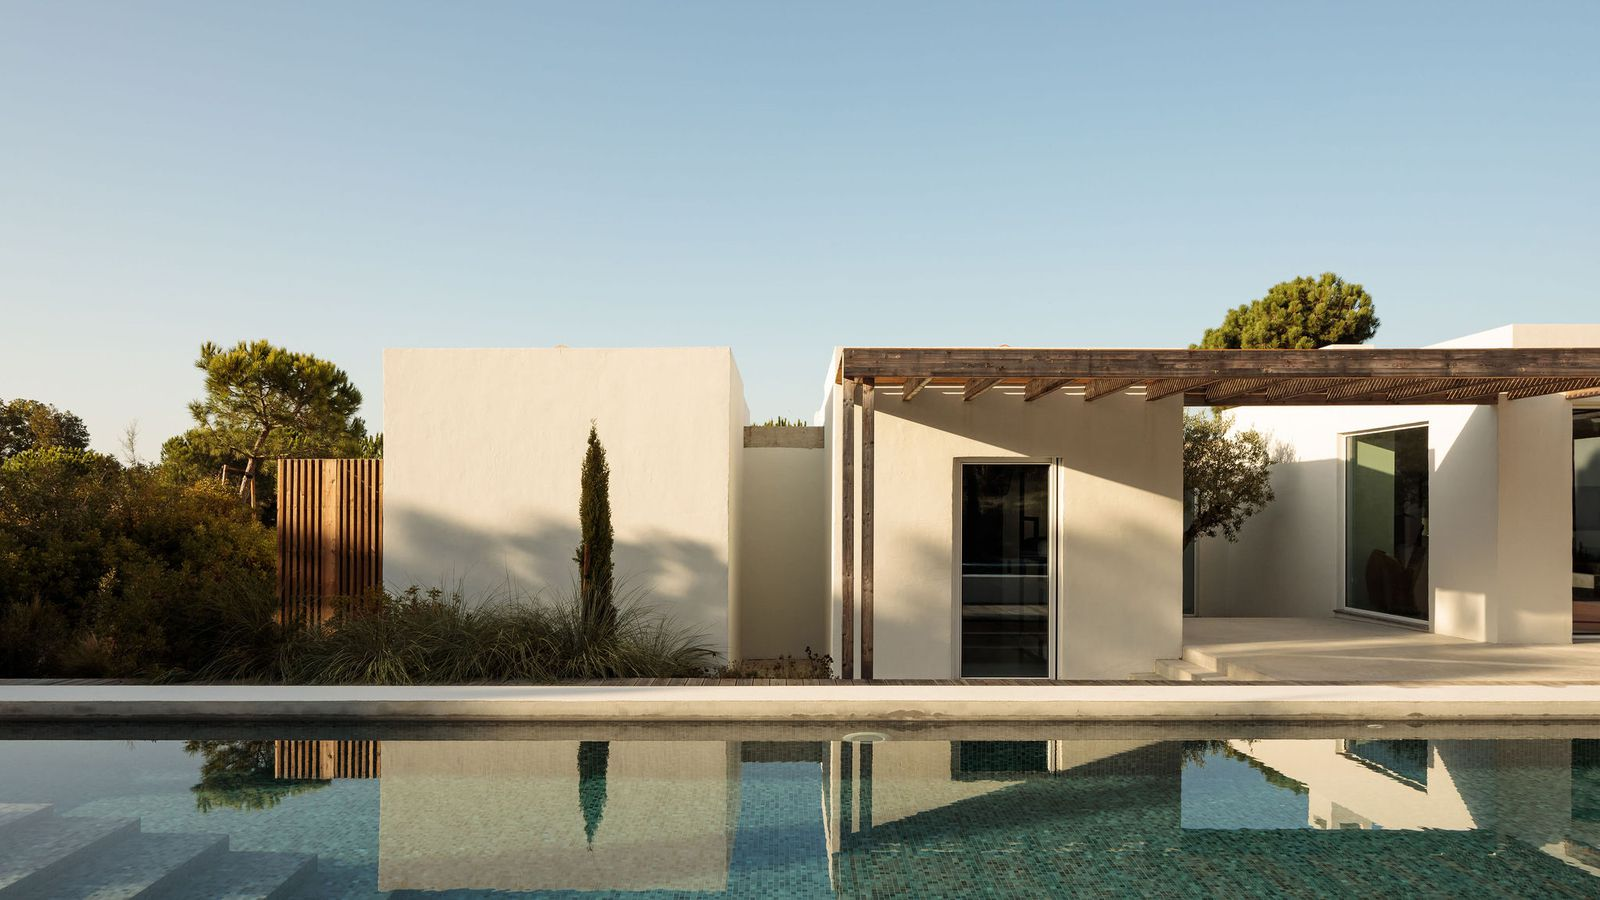 DISCOVER THE 'COMPORTA 10' RESIDENCE IN PORTUGAL, DESIGNED BY FRAGMENTOS ARCHITECTS